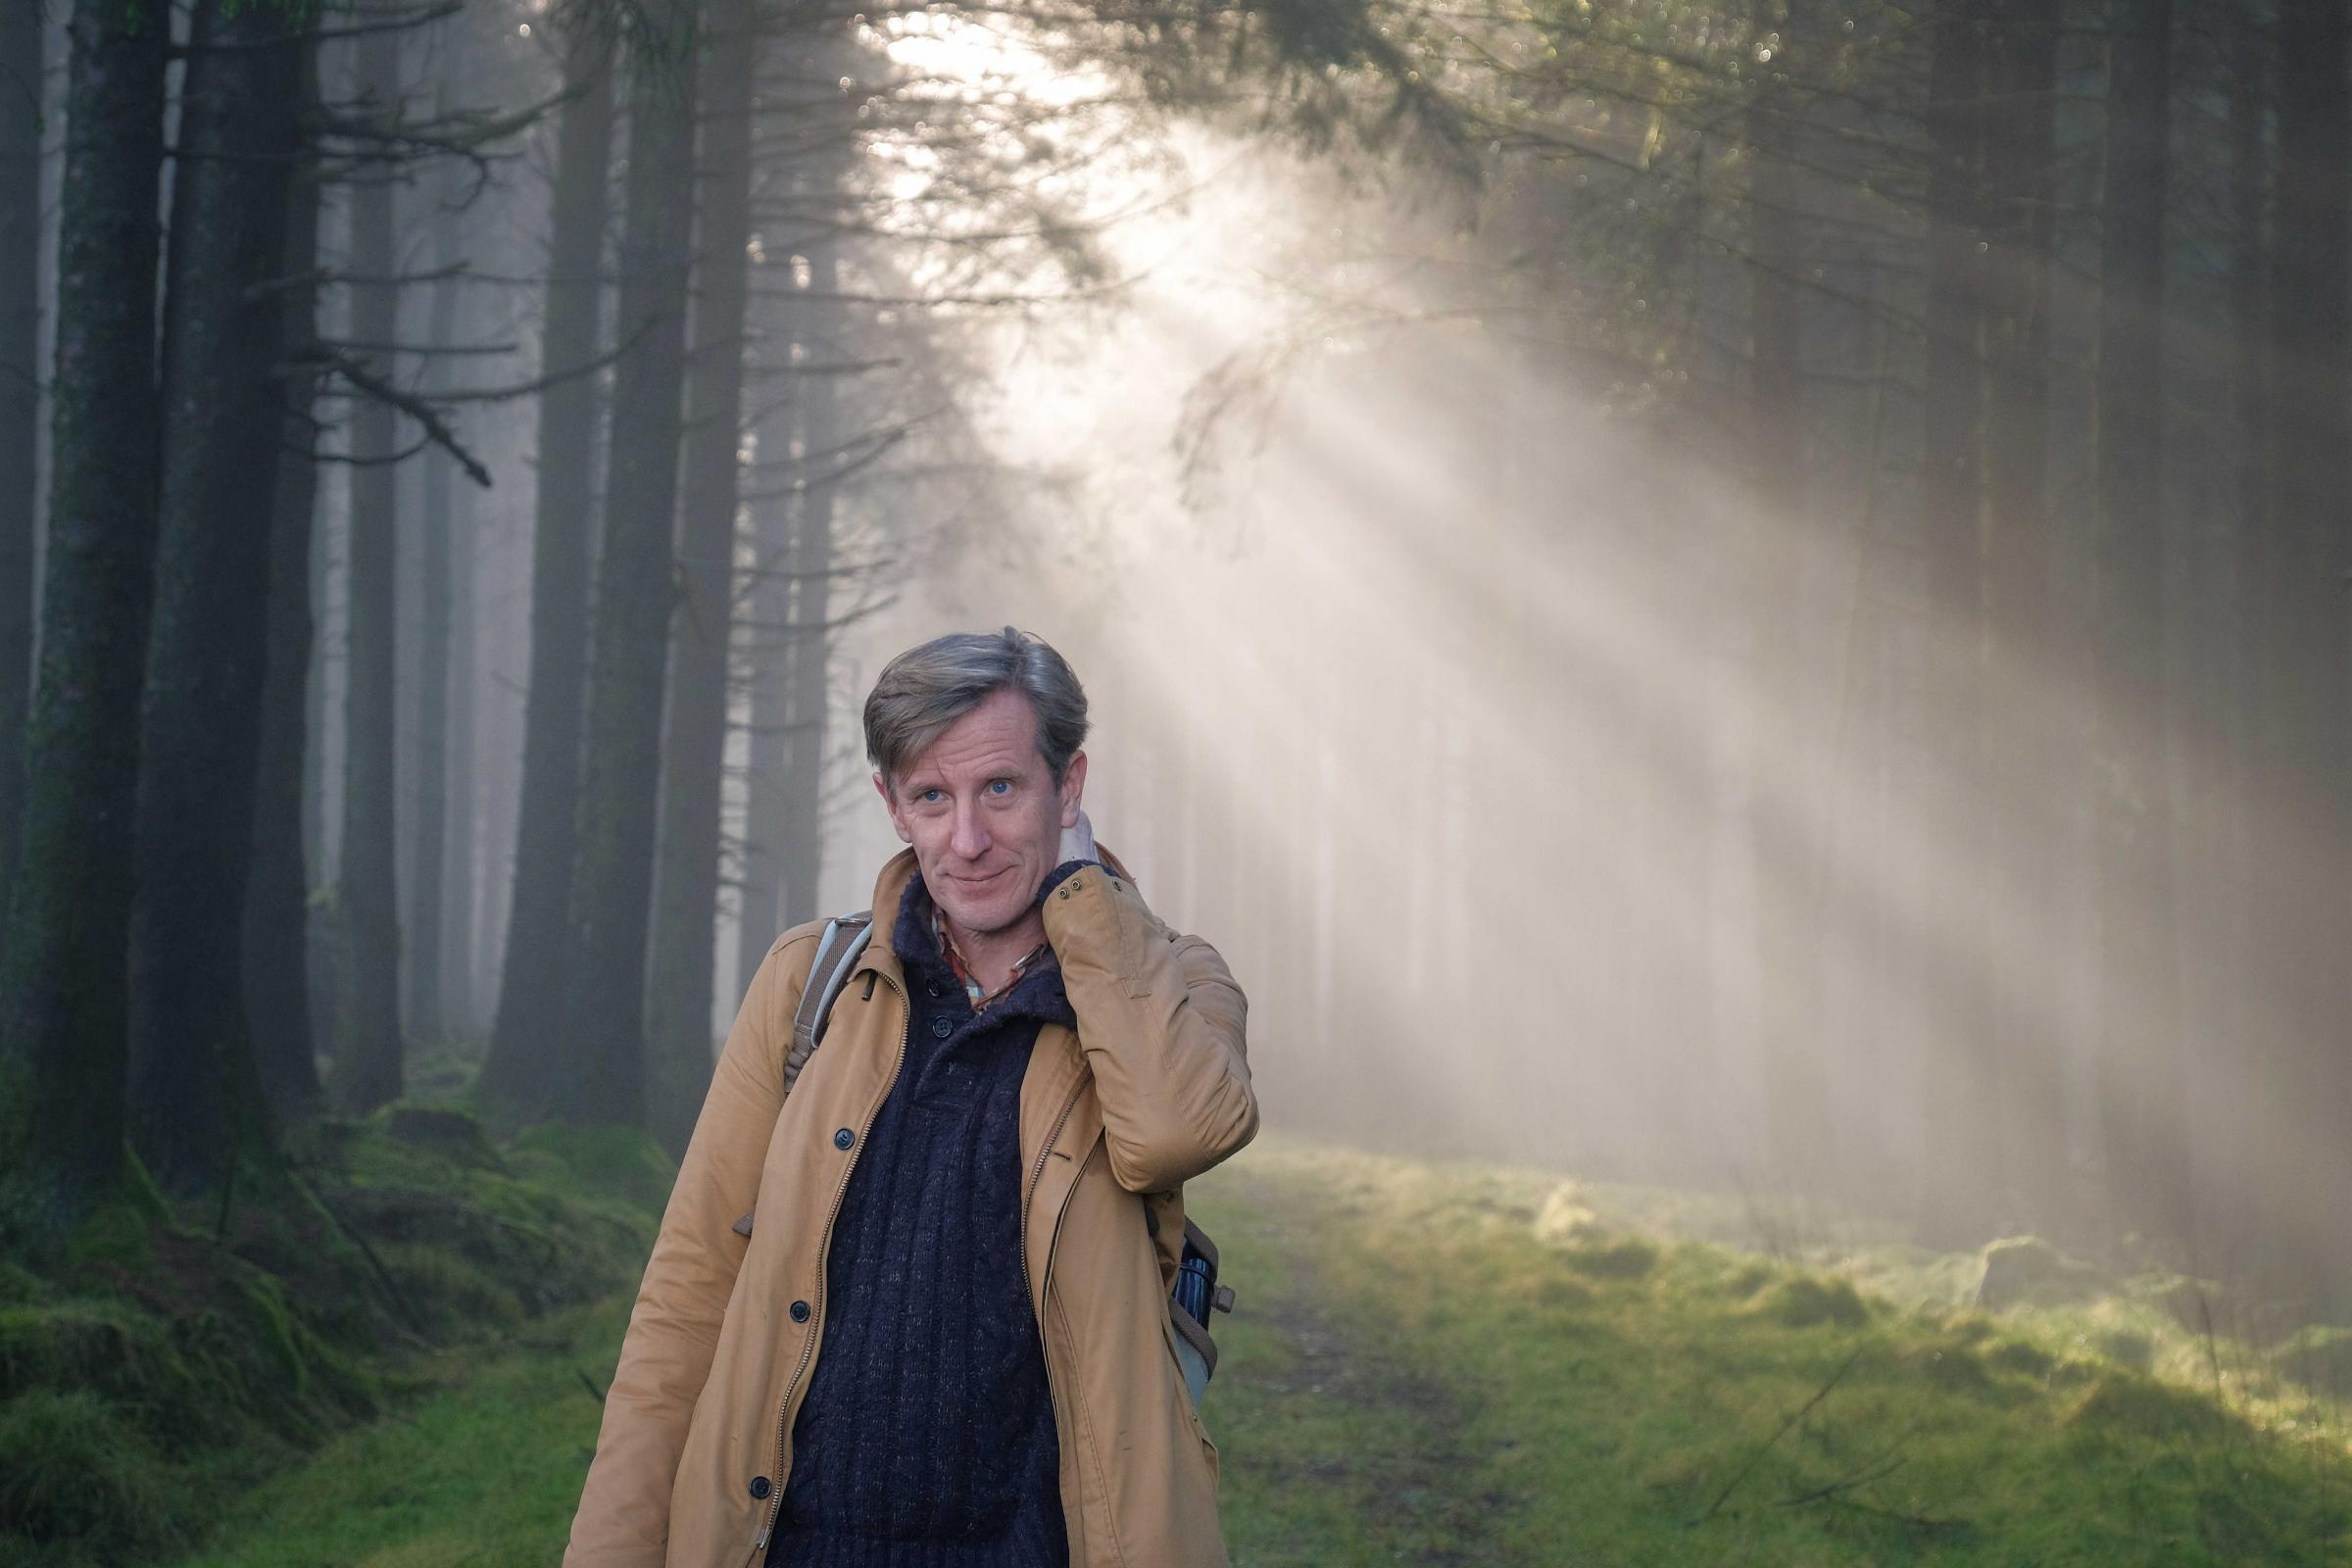 Philip Reeve is part of the line-up at Take pART in Venue Cymru, Llandudno this weekend